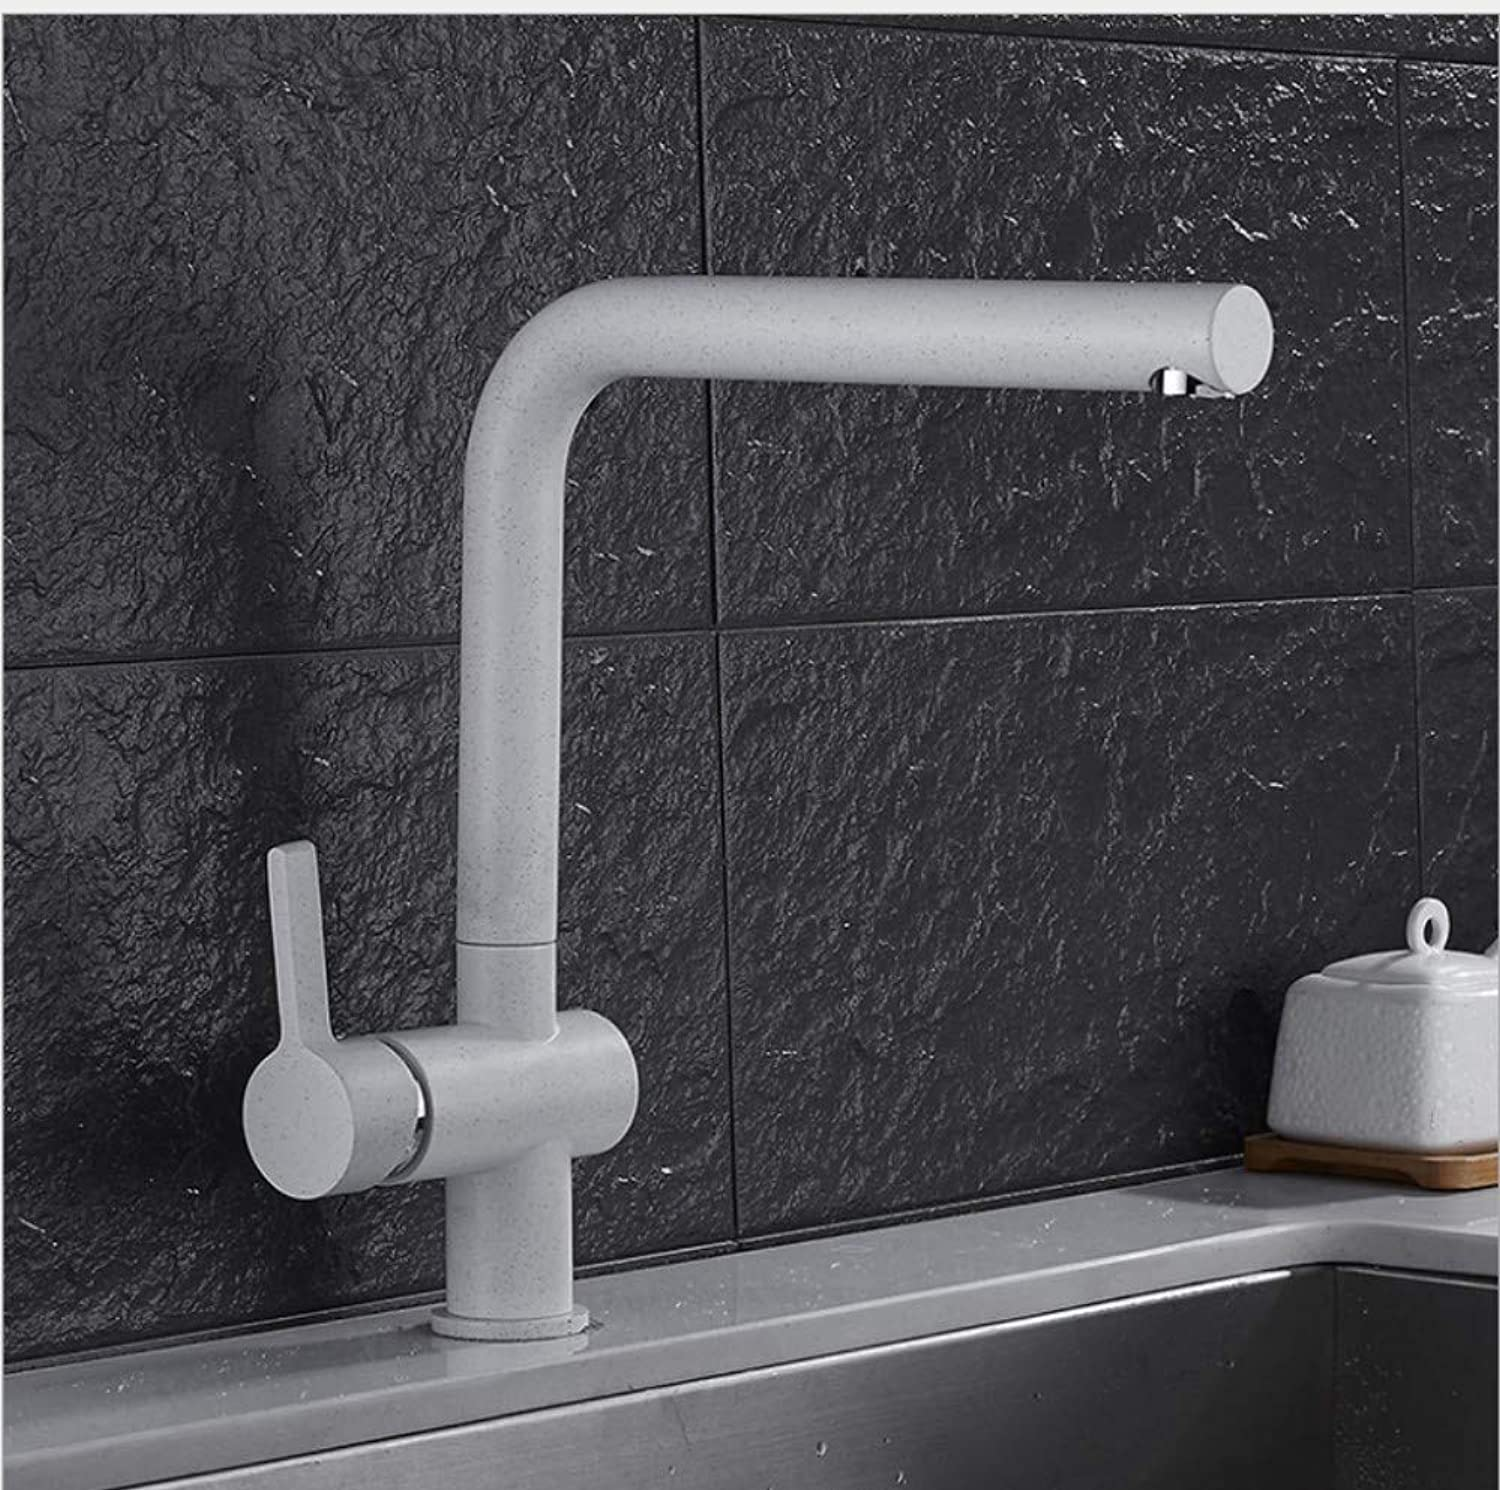 Bathroom Sink Basin Lever Mixer Tap White Belt Point Kitchen Mixing Faucet redary Tank Washing Pot Cold and Hot Water Faucet